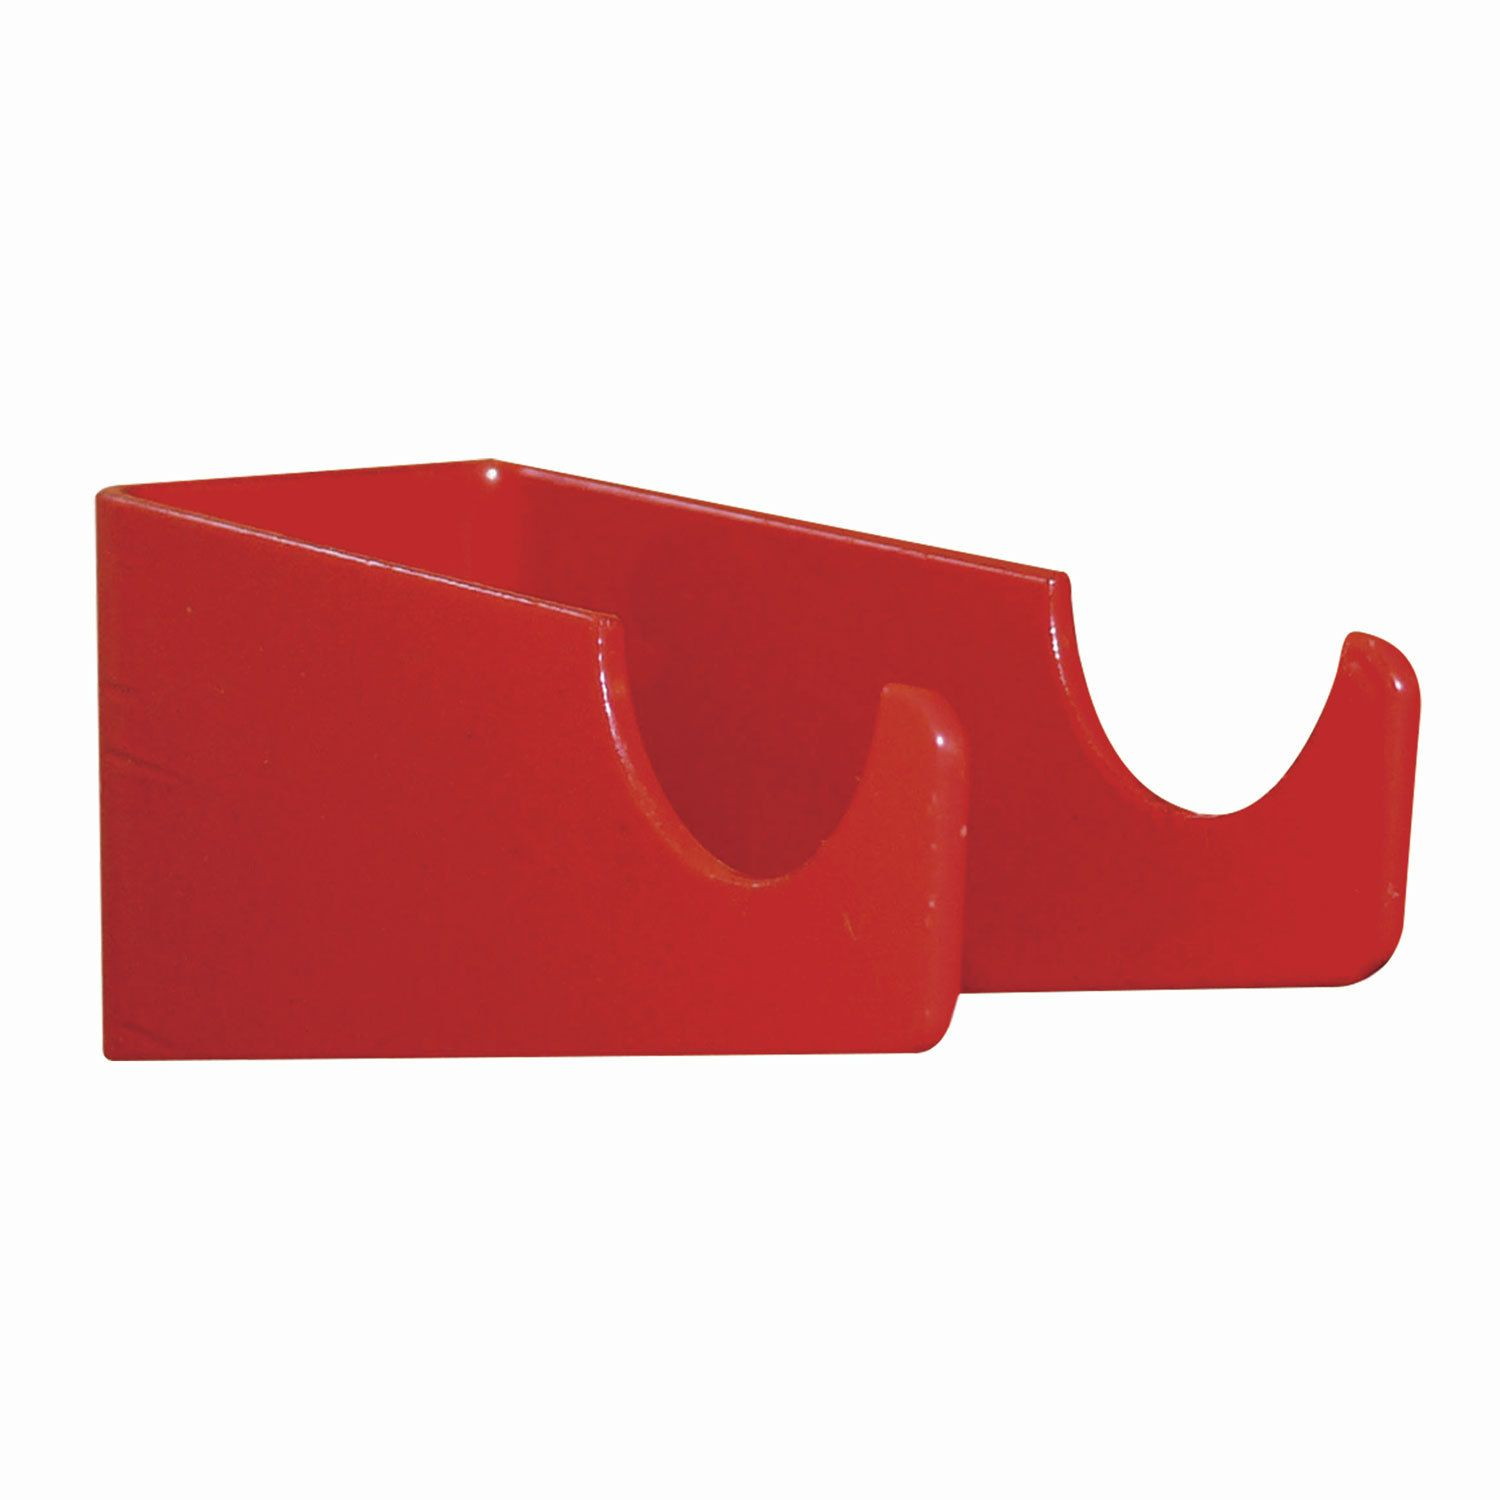 FROST / Wall bracket for portable carbon dioxide fire extinguishers